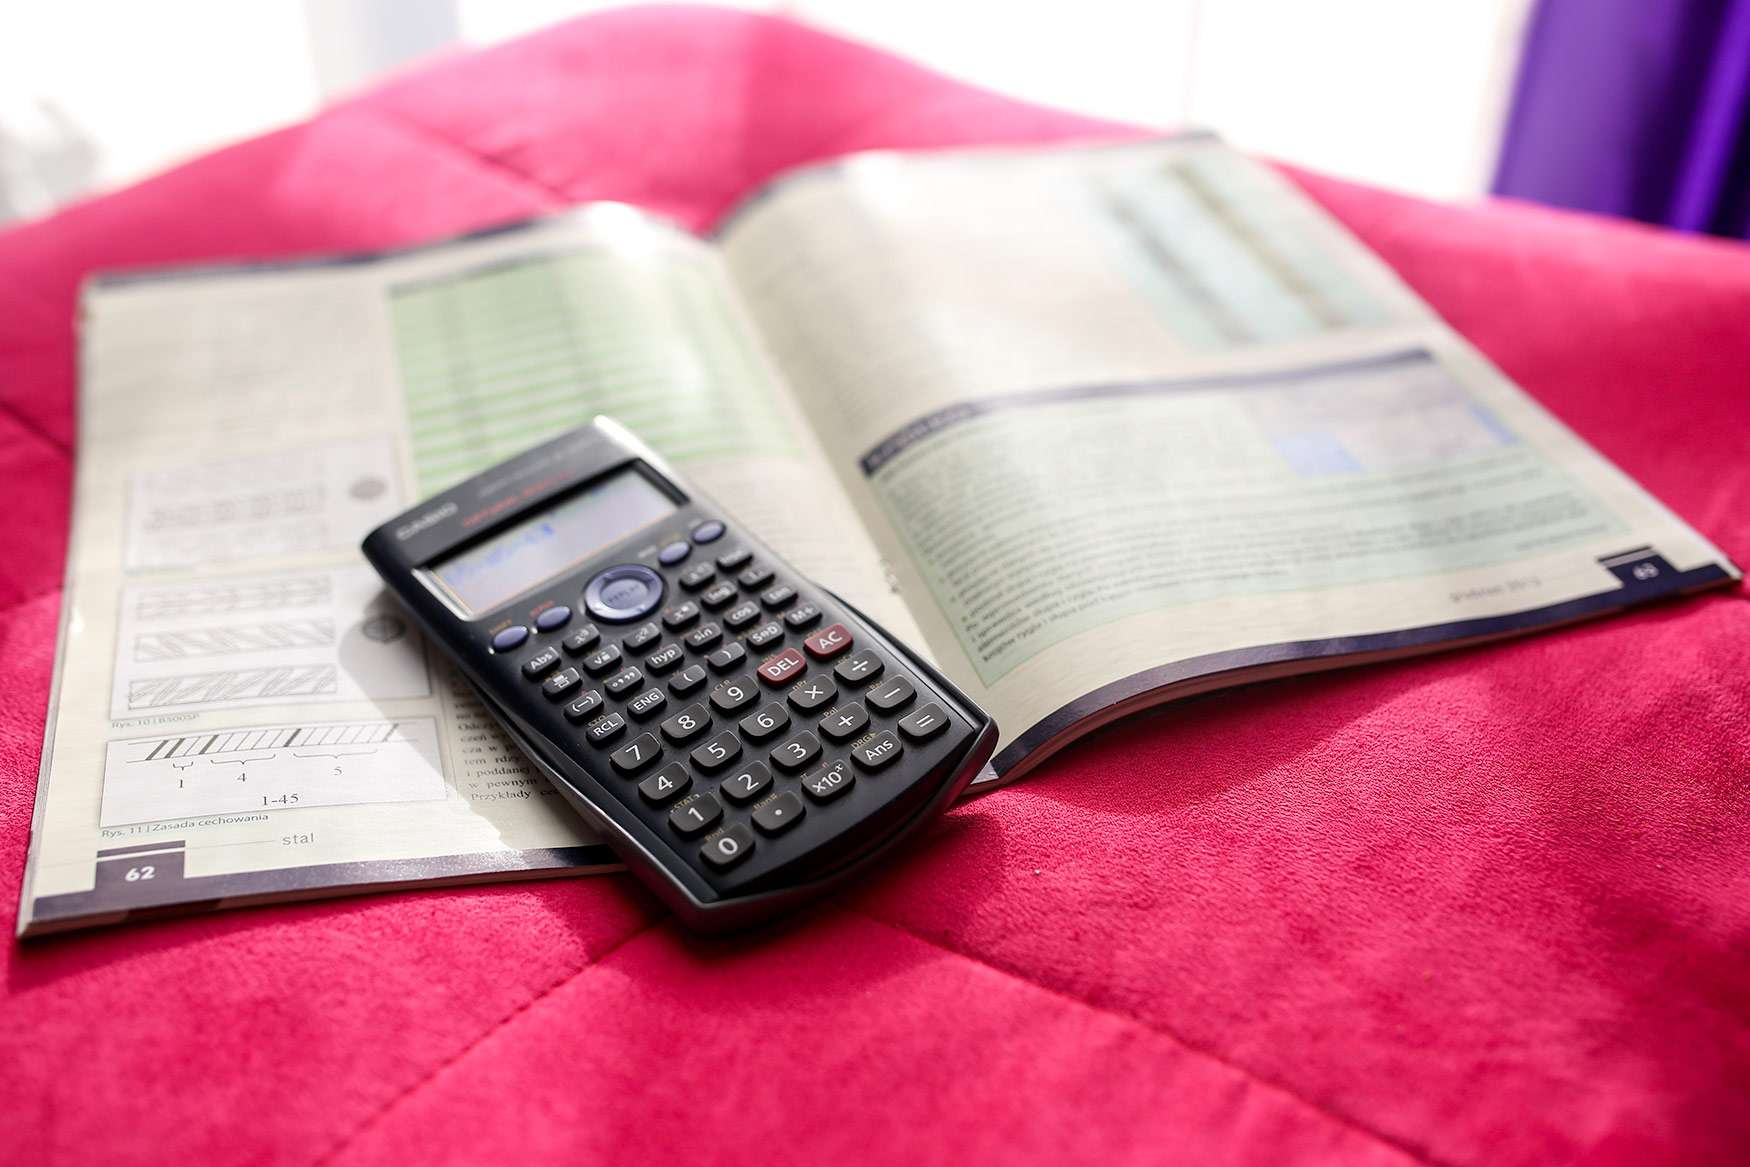 Calculator and test prep book